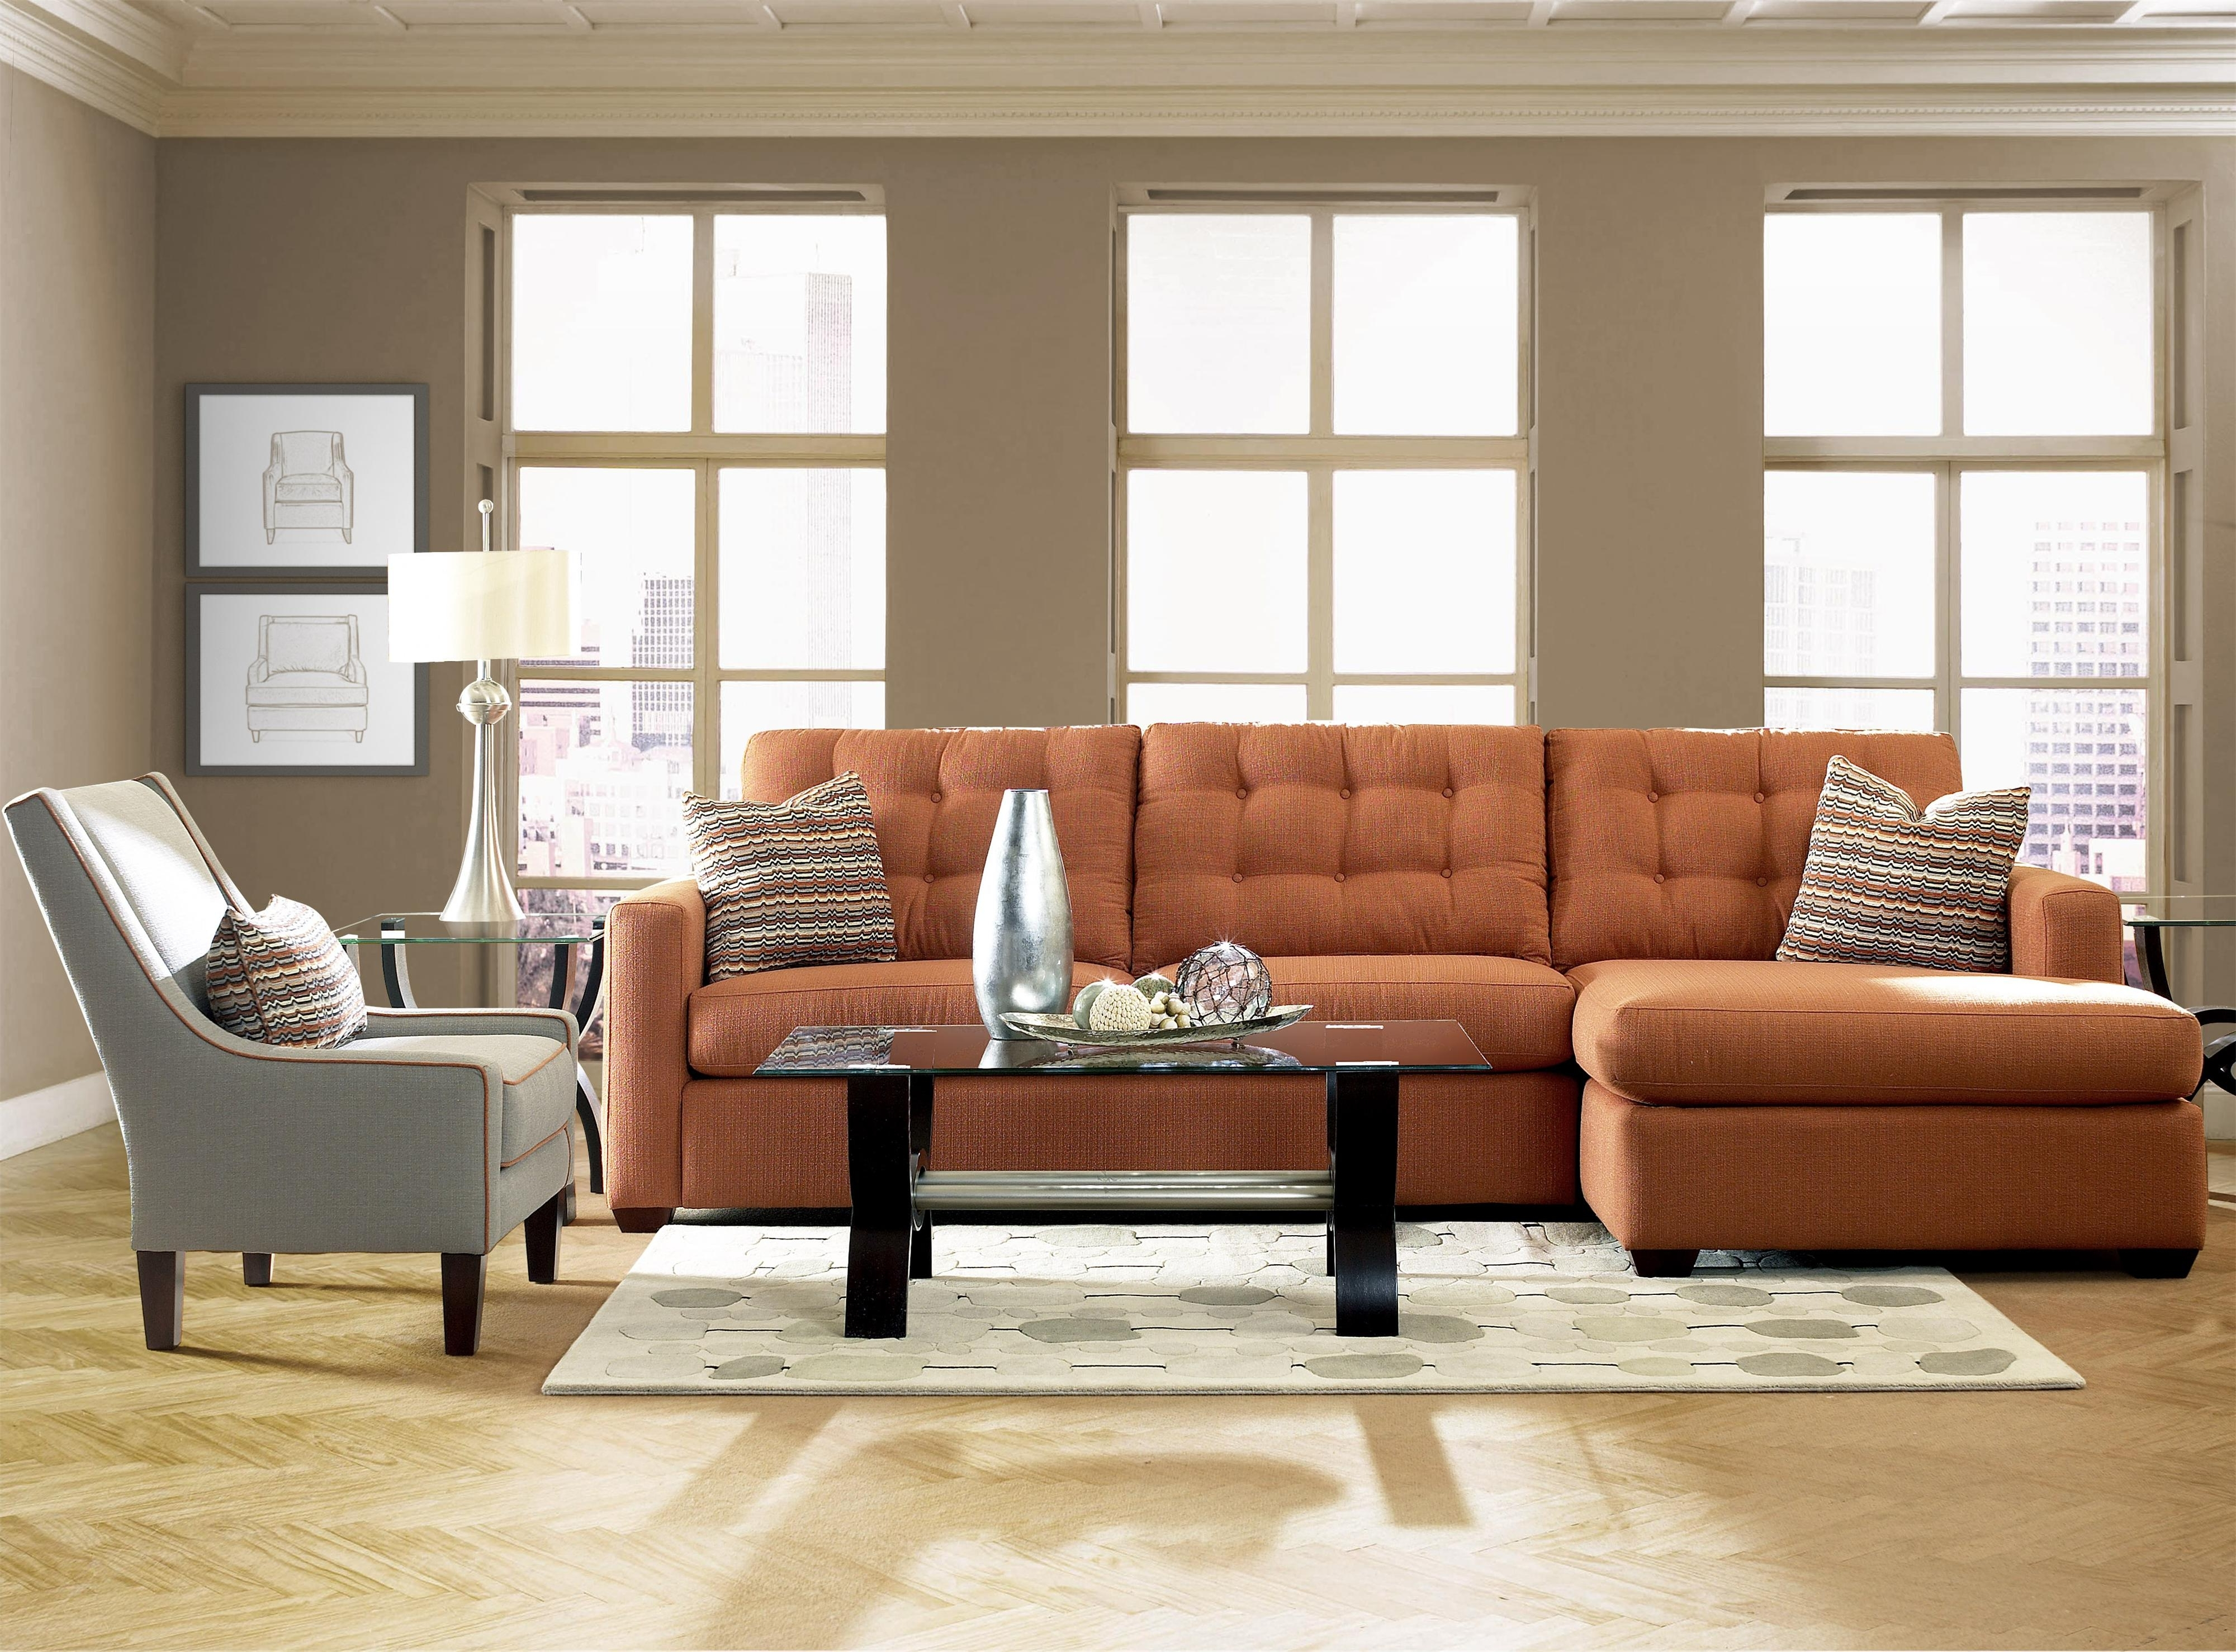 Famous Chaise Lounges For Living Room In Chaise Lounge Chairs Living Room Furniture • Lounge Chairs Ideas (View 8 of 15)